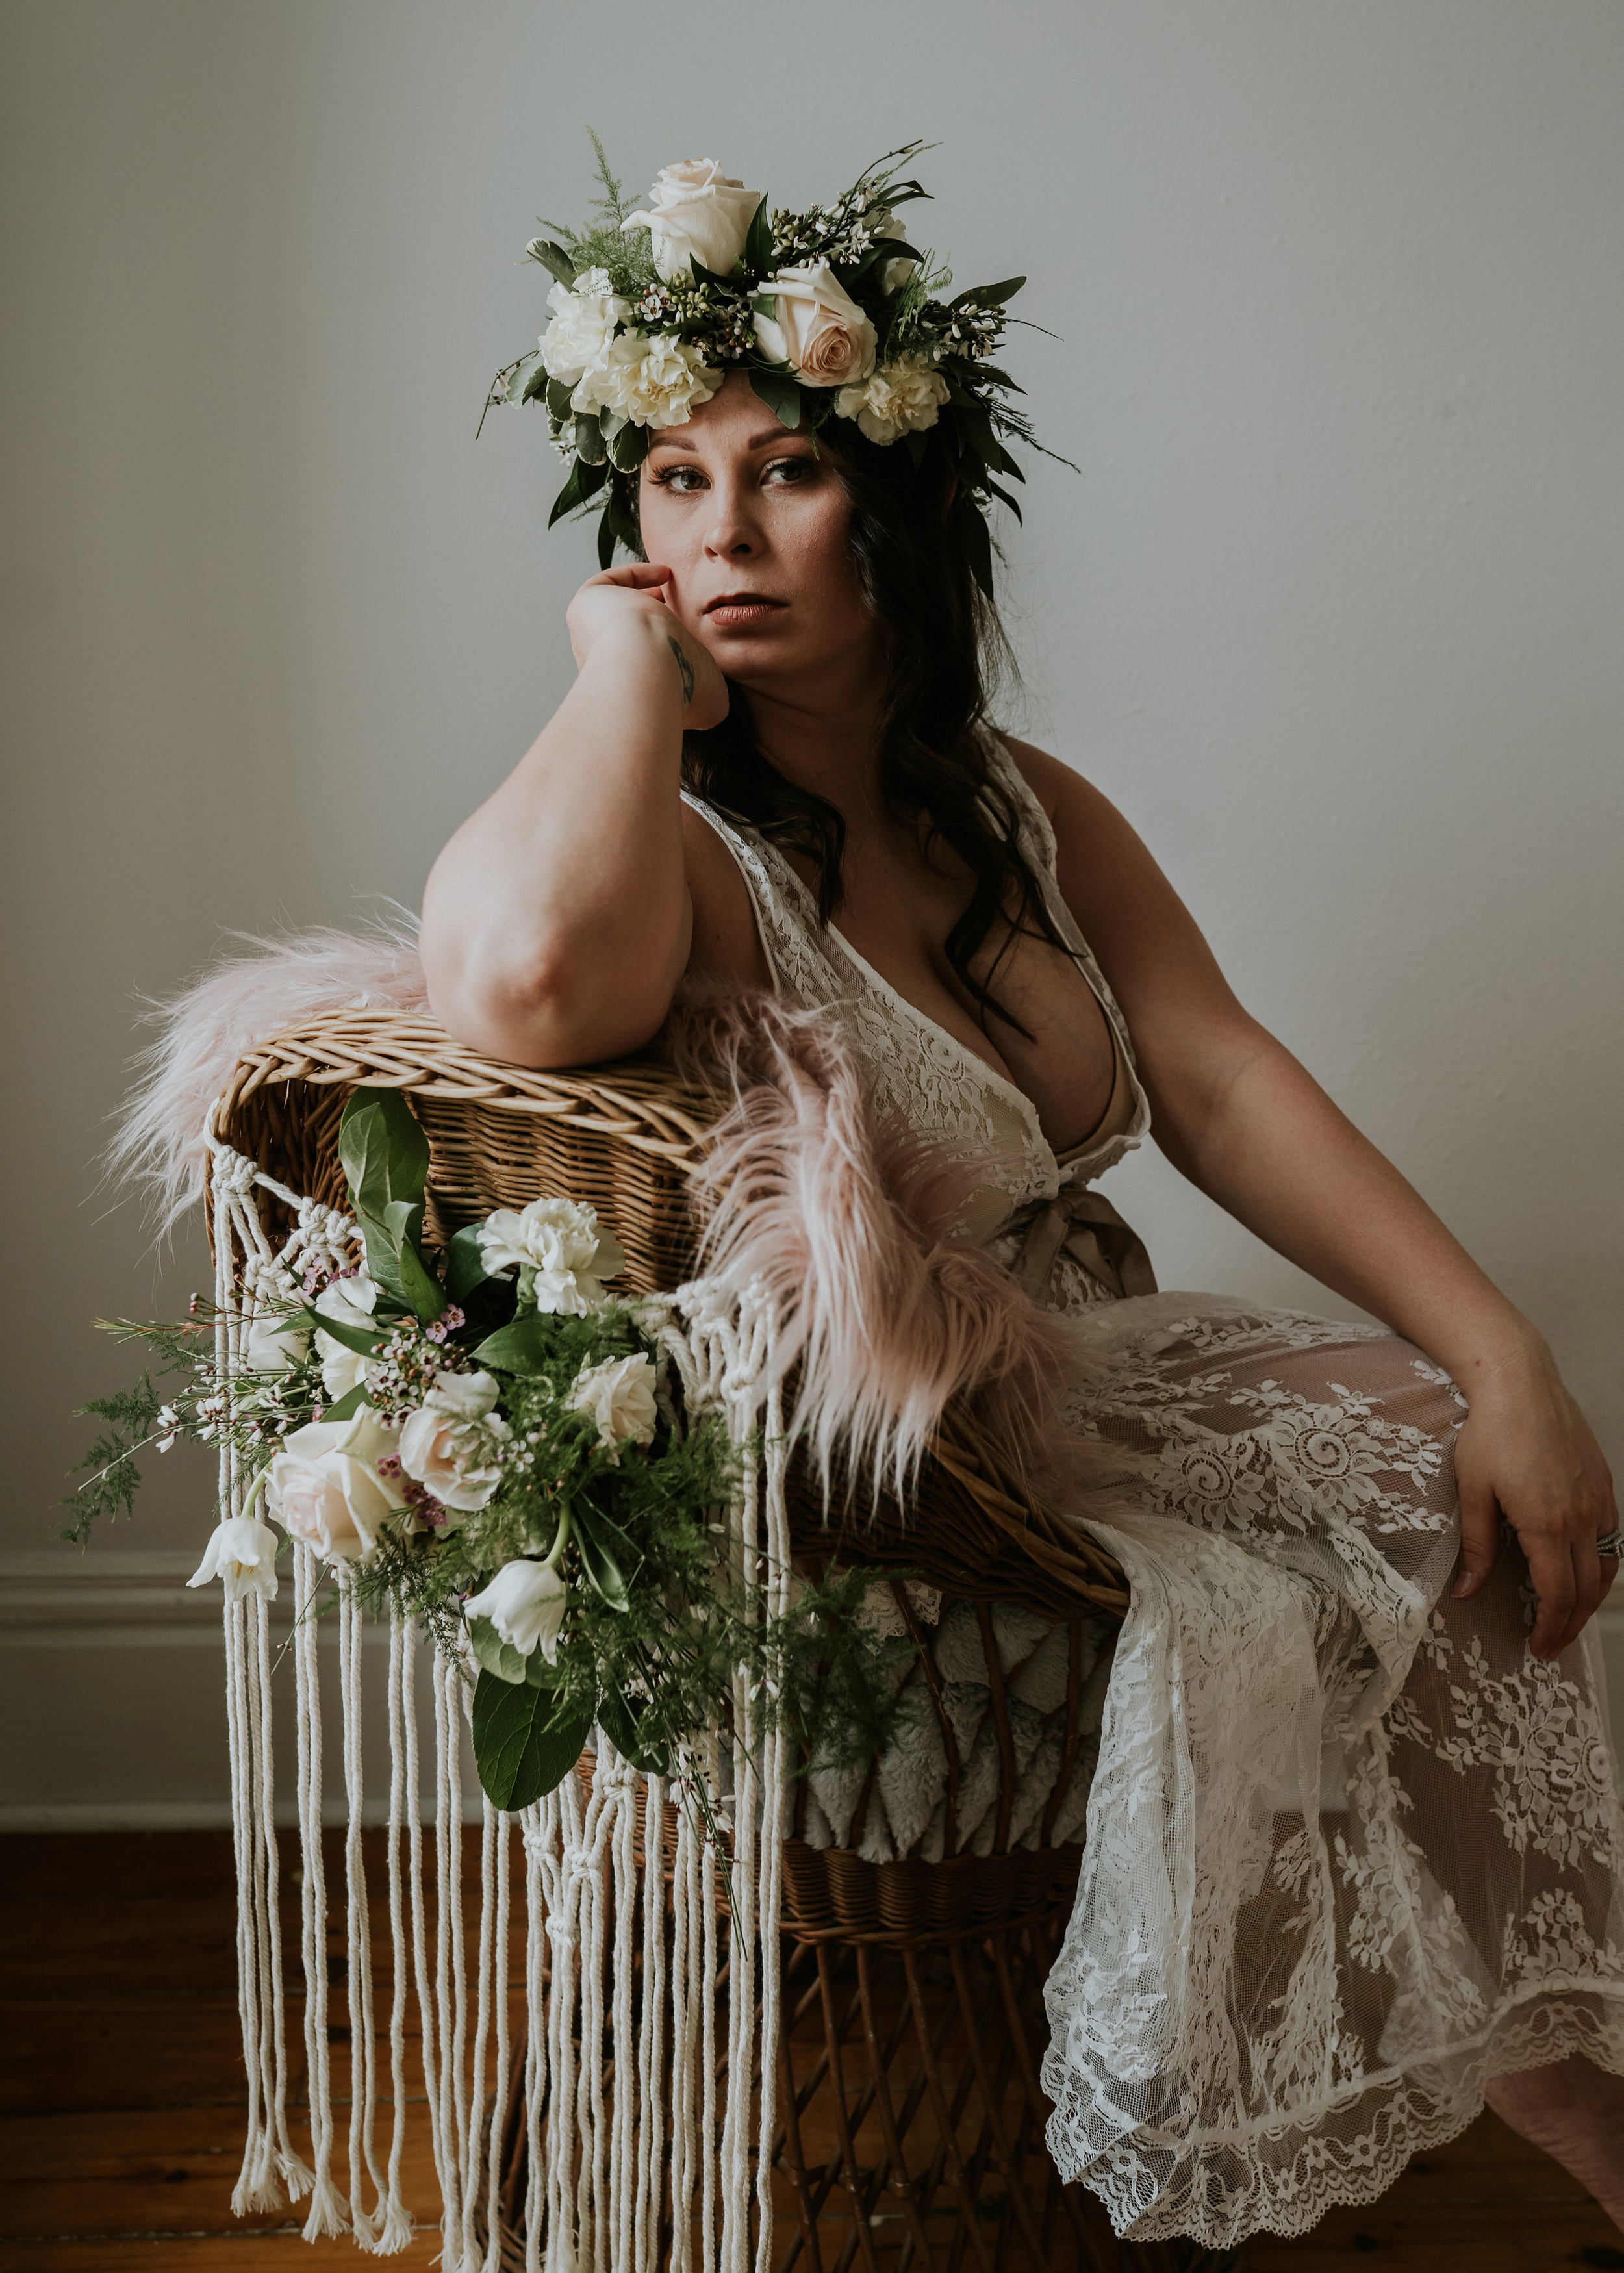 new mother photo shoot, woman wears lacy lingerie from Des Moines and sits in wicker boho chair with floral accents by Lavender Blue Floral, styled photos and design by Lavender Blue